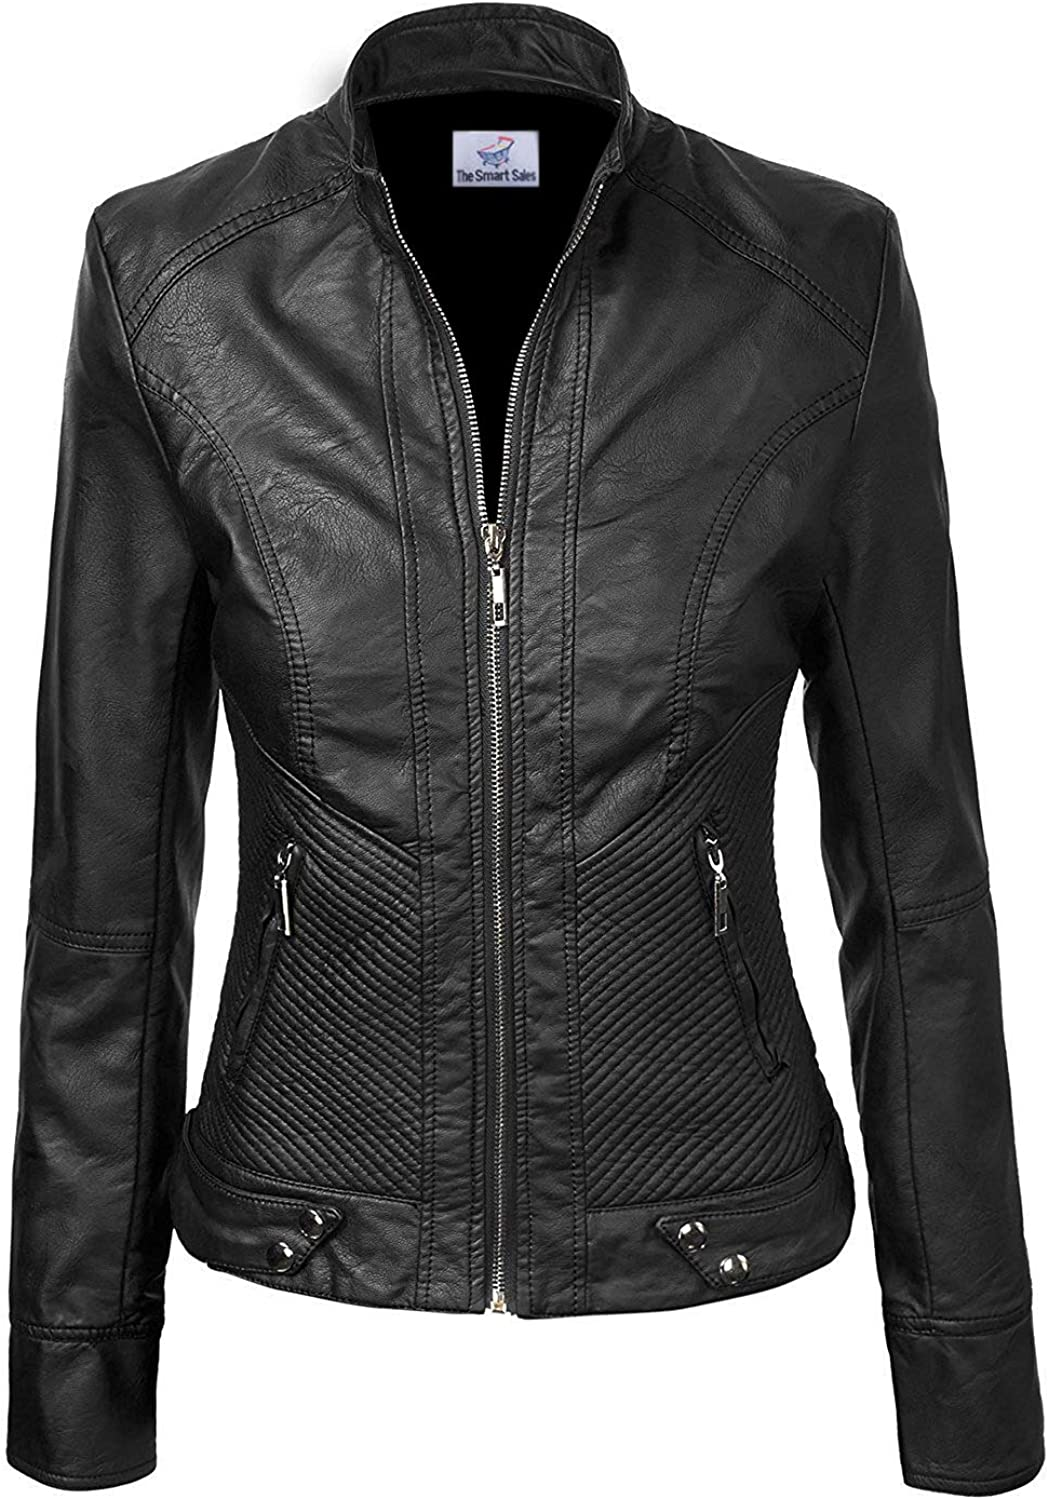 TheSmartSales Black Faux Custom Made Leather Jacket for Women